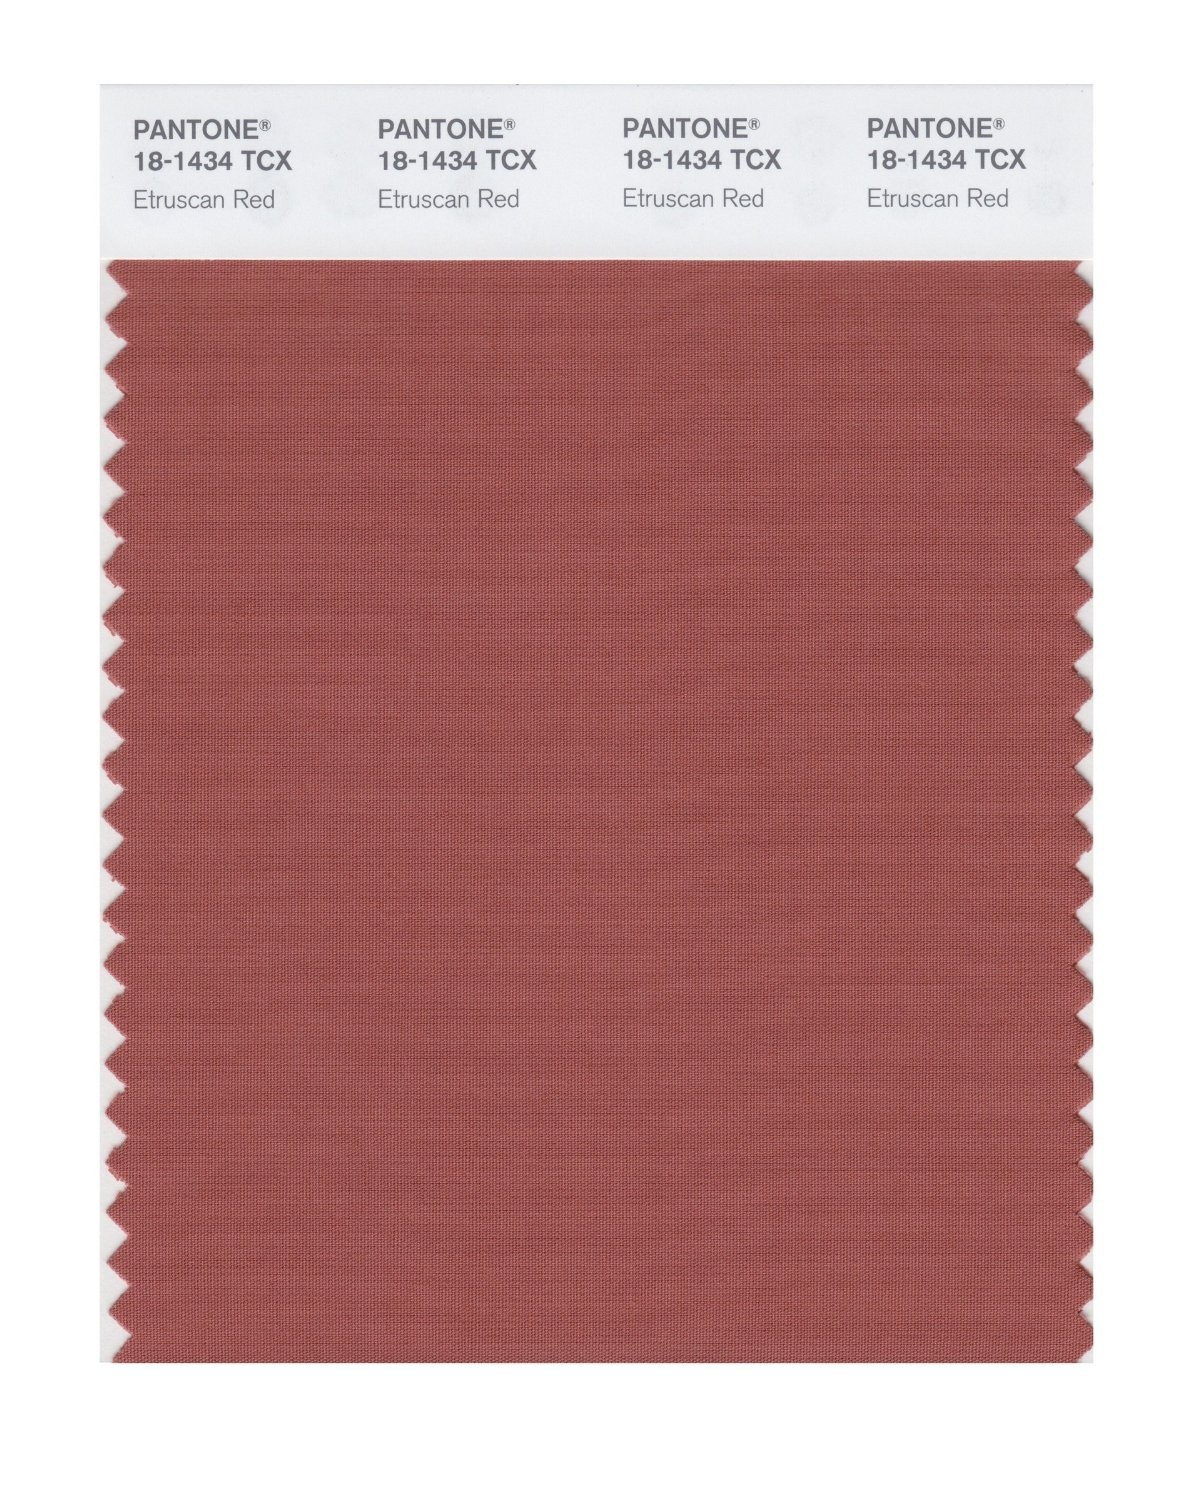 Pantone 18-1434 TCX Swatch Card Etruscan Red